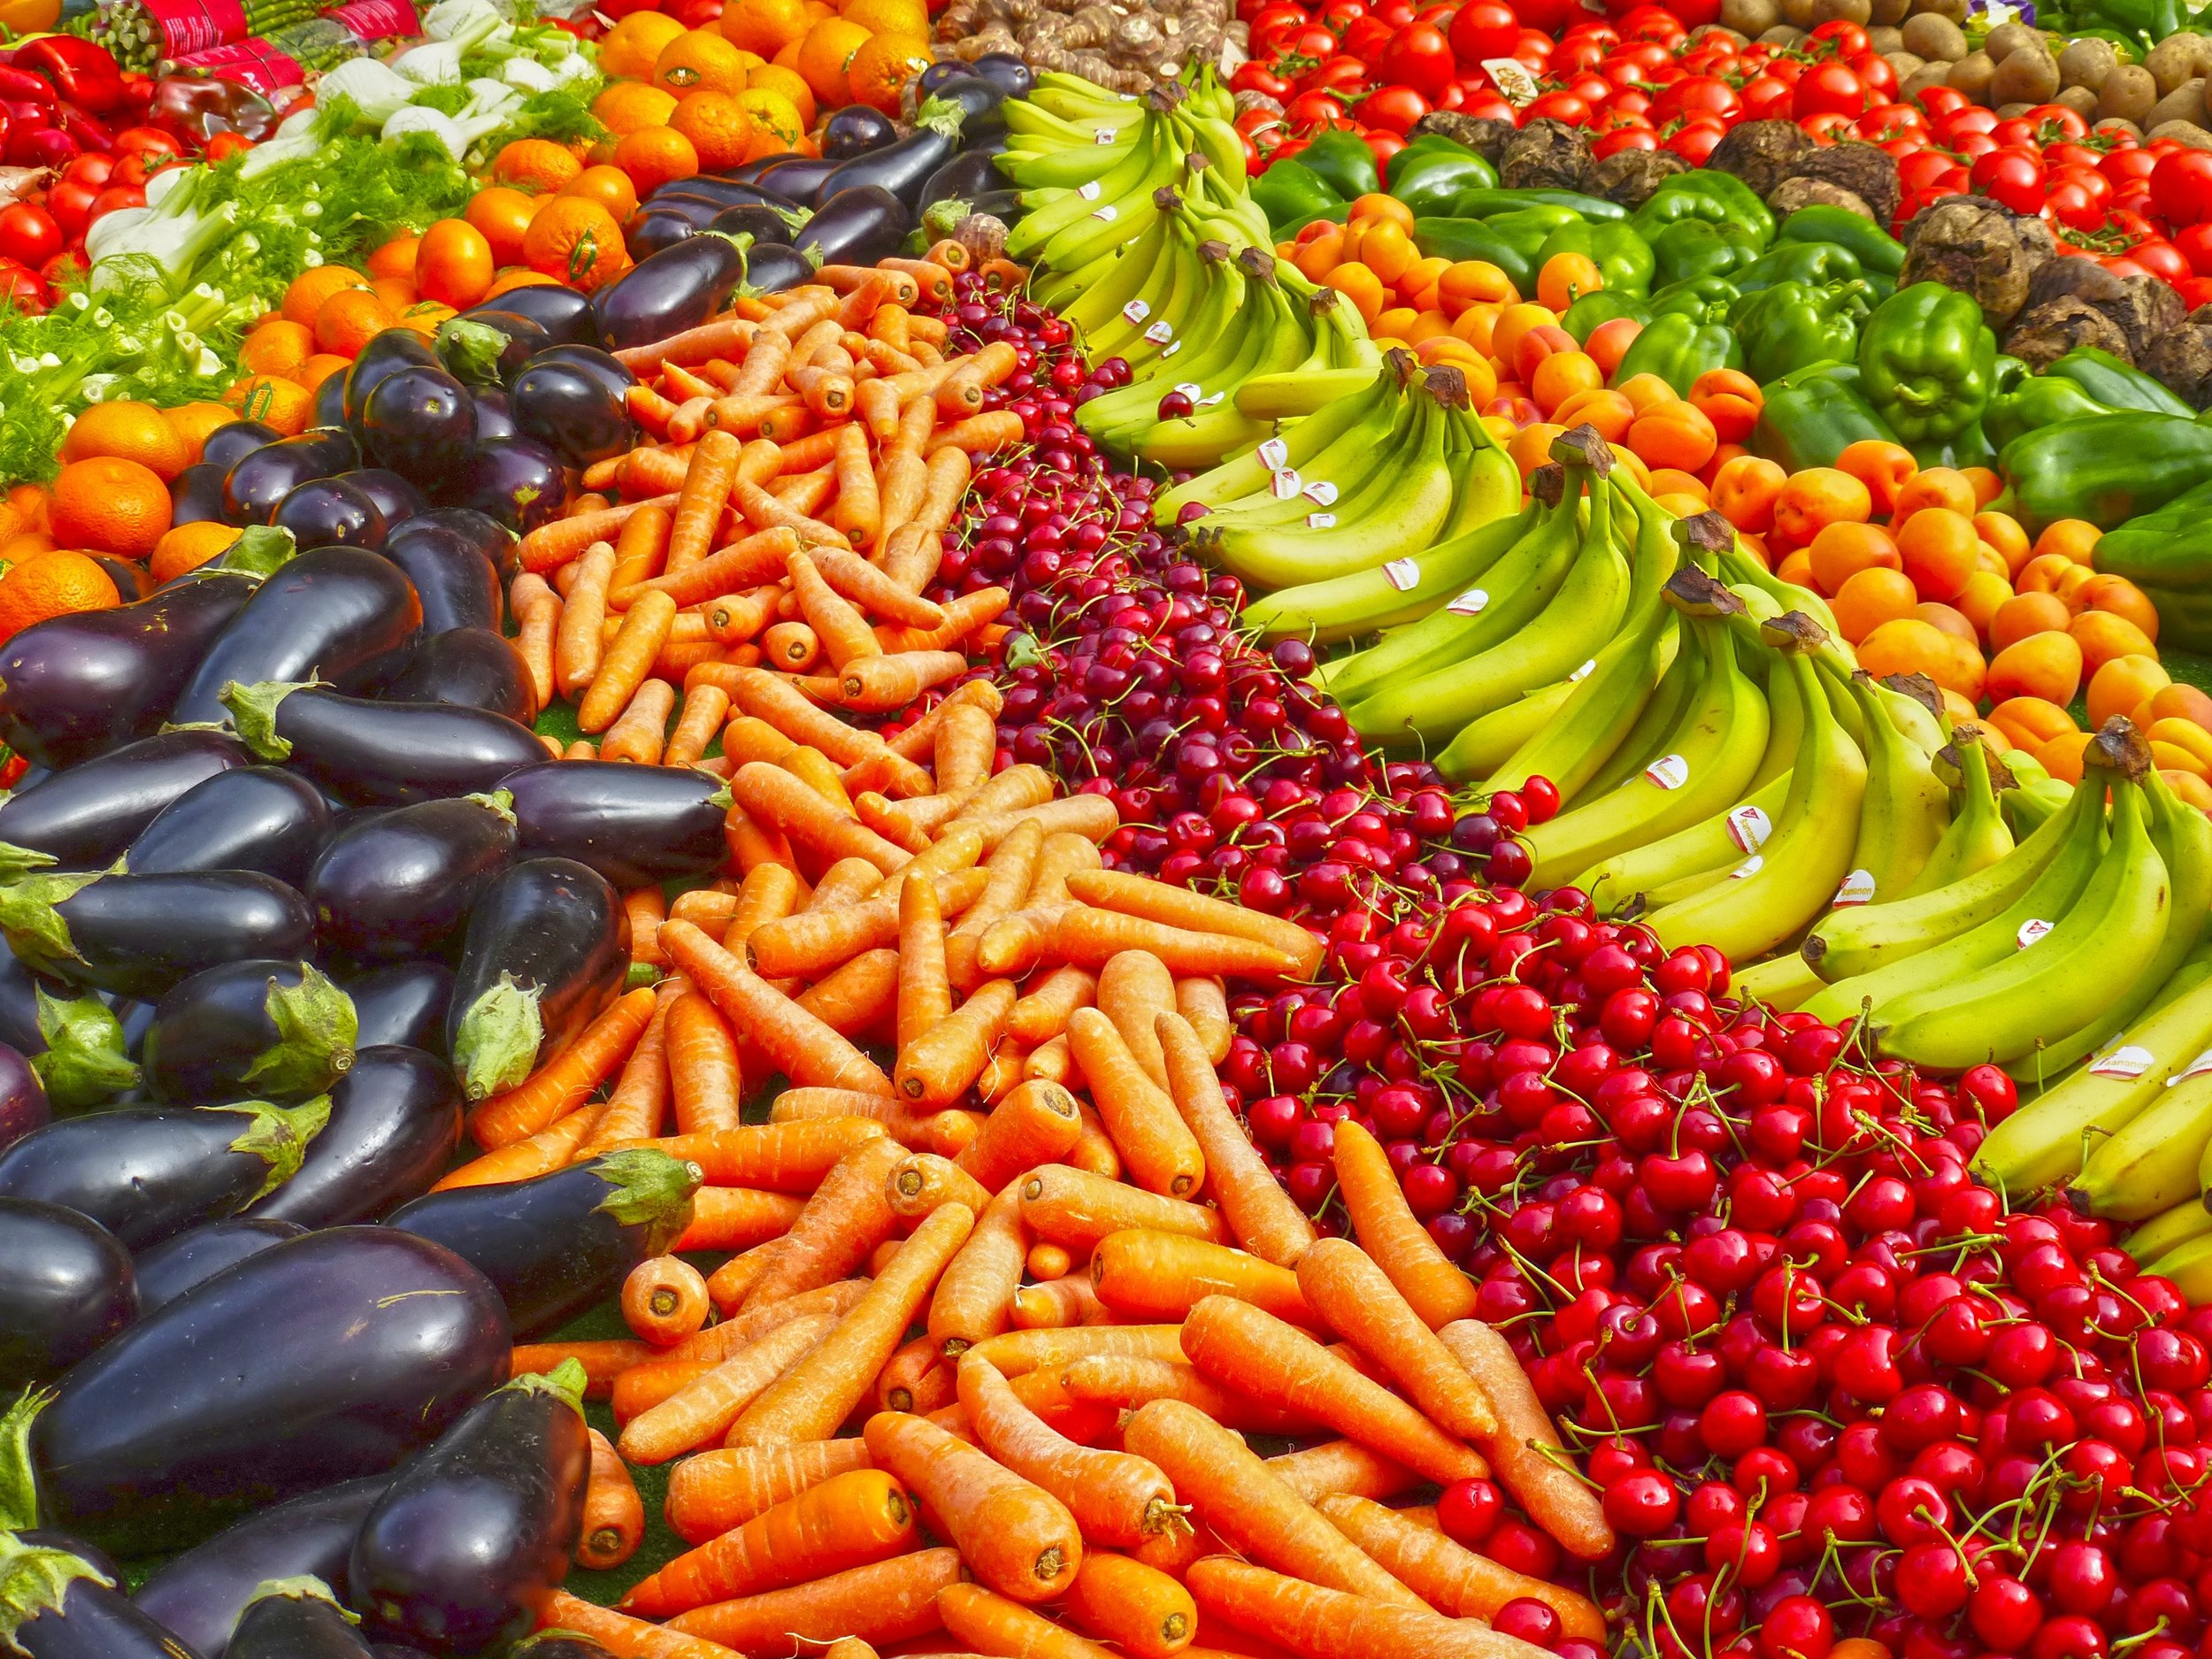 Professor Tim Spector suggests eating polyphenol rich foods like coloured vegetables for a healthy gut